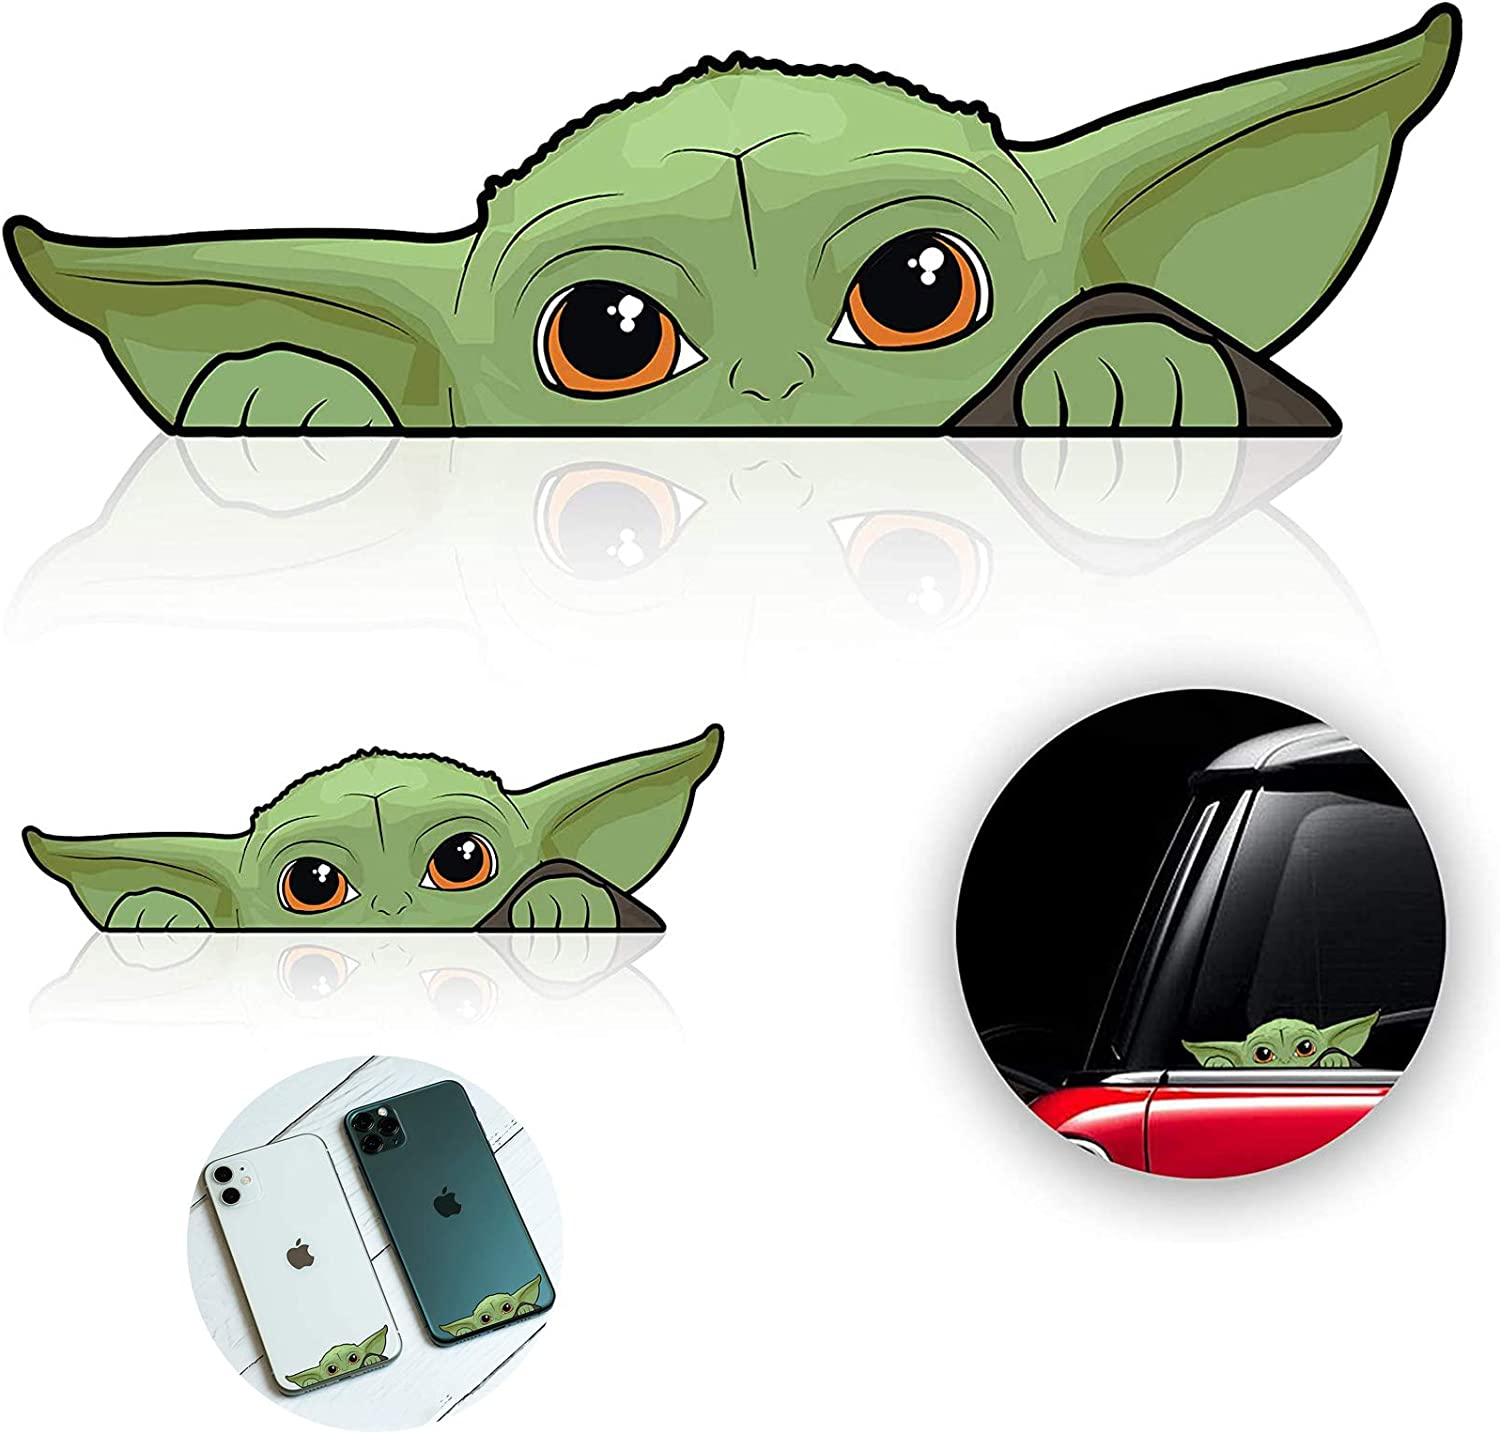 KMDJG 10 Pack Baby Yoda Stickers, 5 Large and 5 Small Stickers for Window, Laptop, Luggage, Skateboard, Bike, Mandalorian, Decal Window Accessories for Car